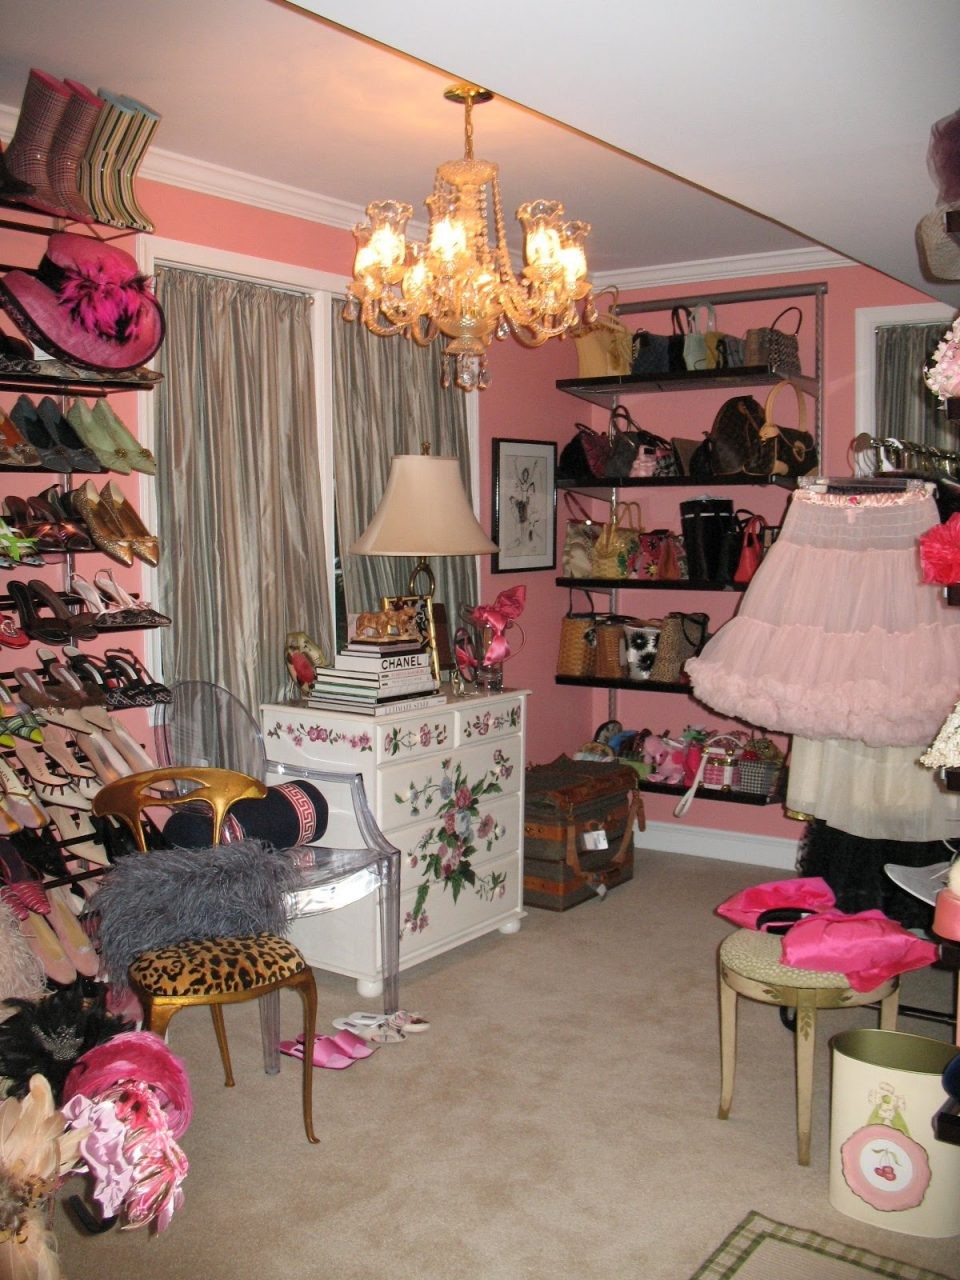 Quirky Dressing Room With Chandelier Room Decor And Design